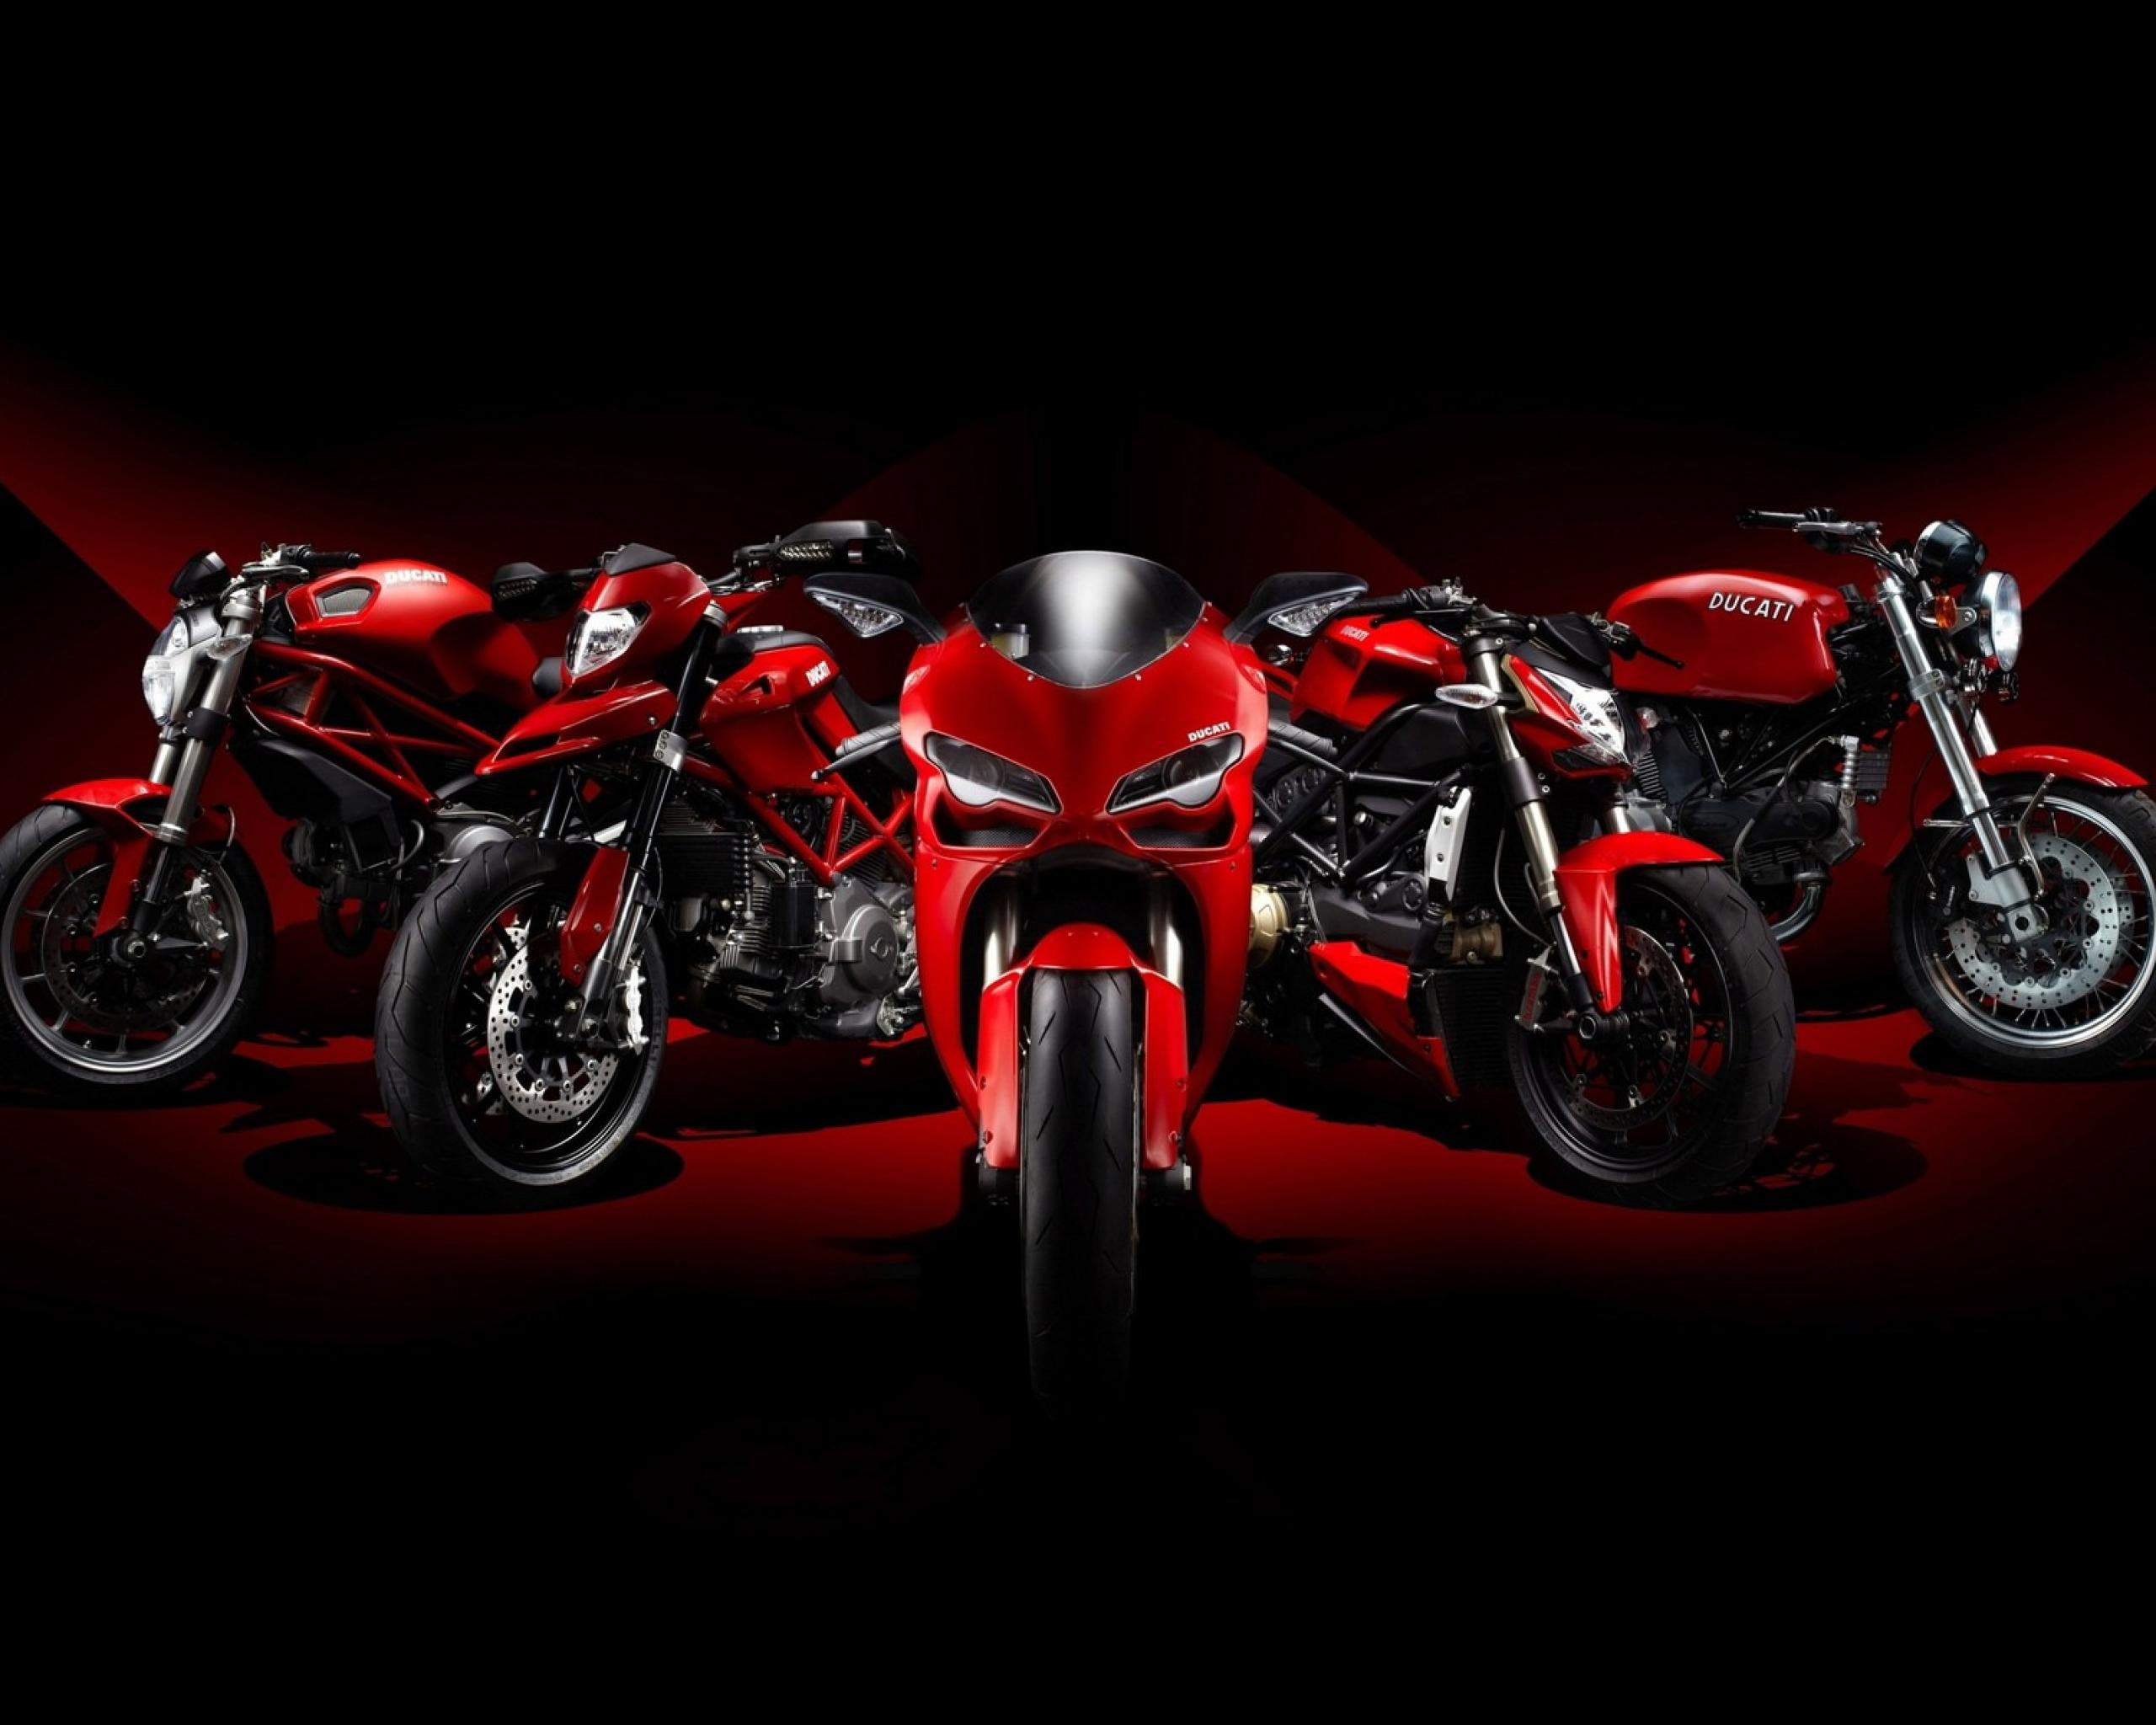 Motorcycle Wallpapers Hd Wallpaper Cave Total Update